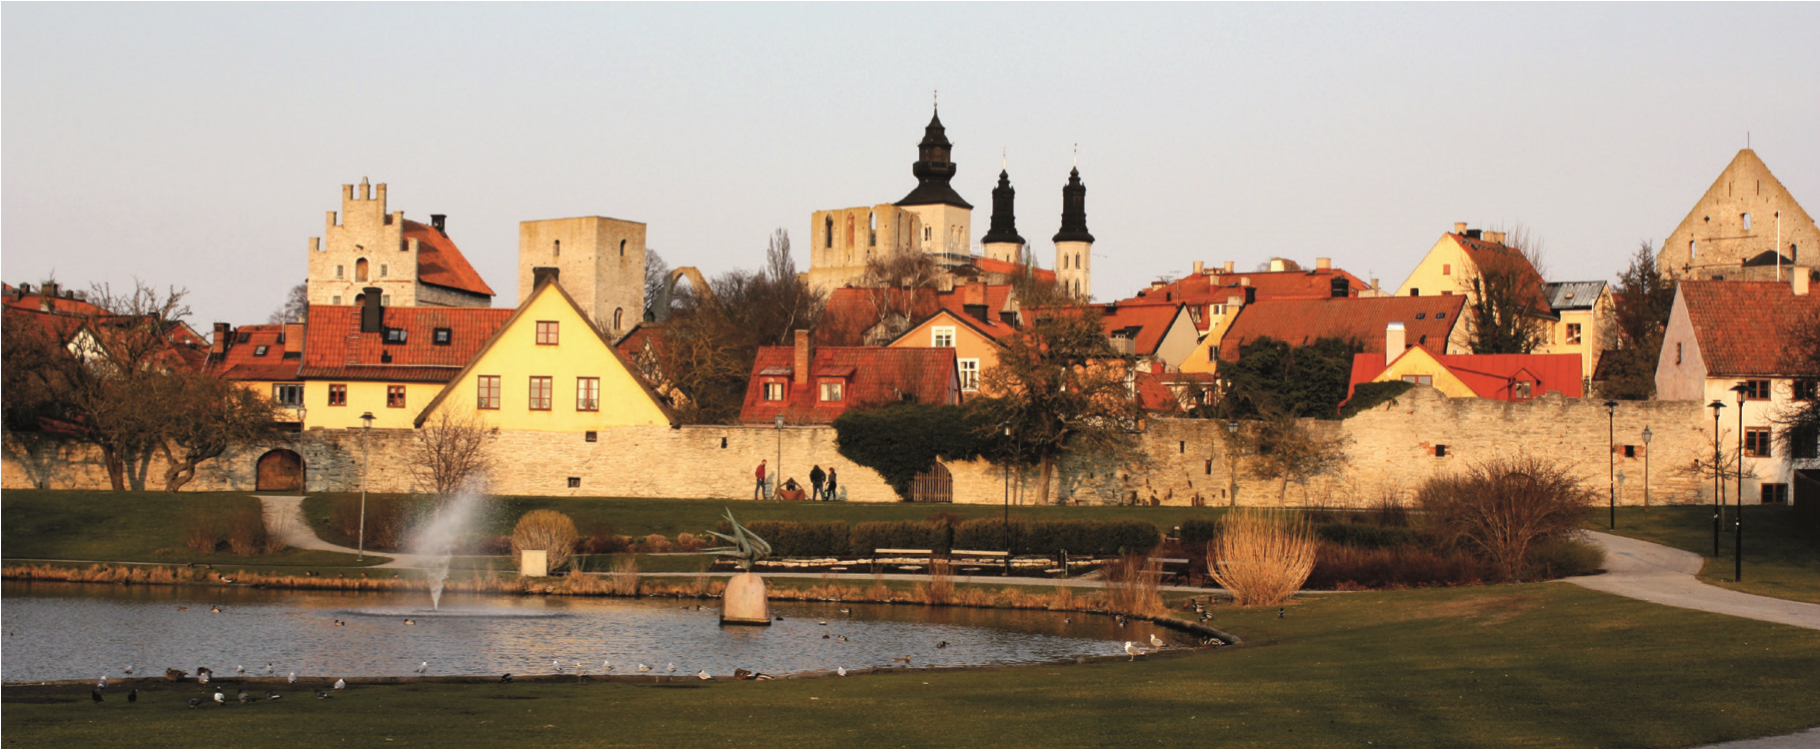 Visby.png